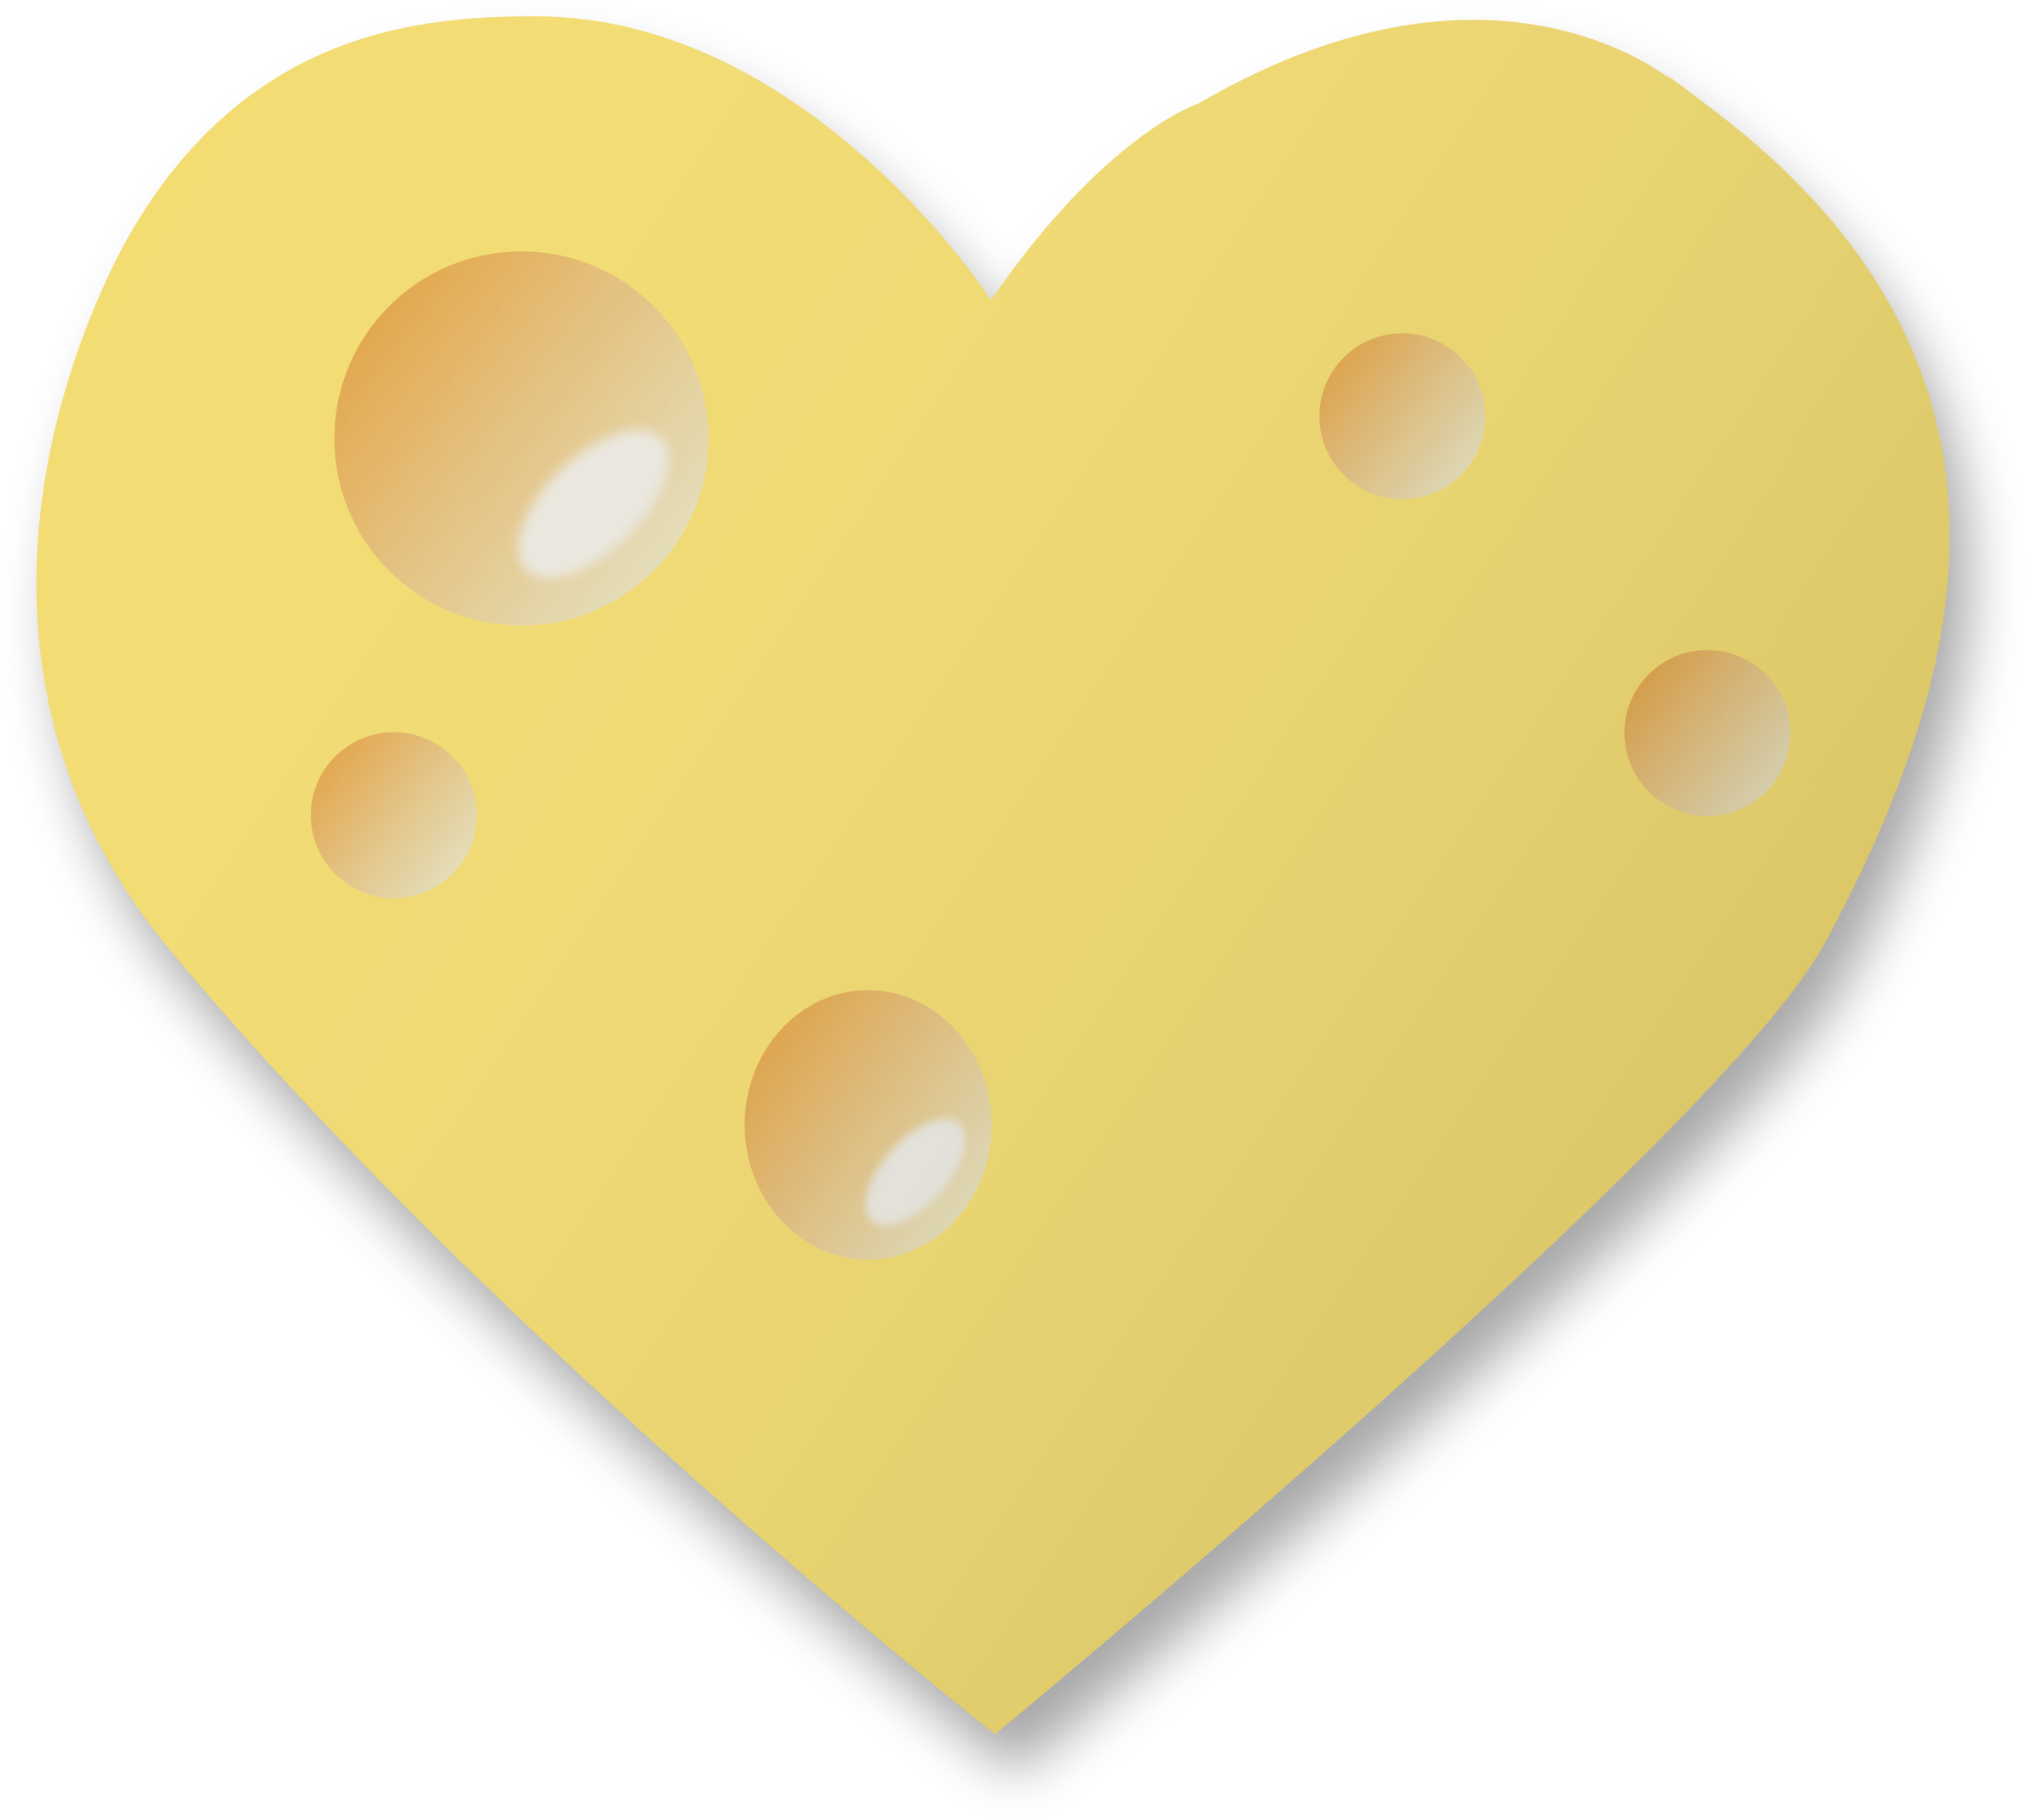 Swiss cheese heart by Firkin